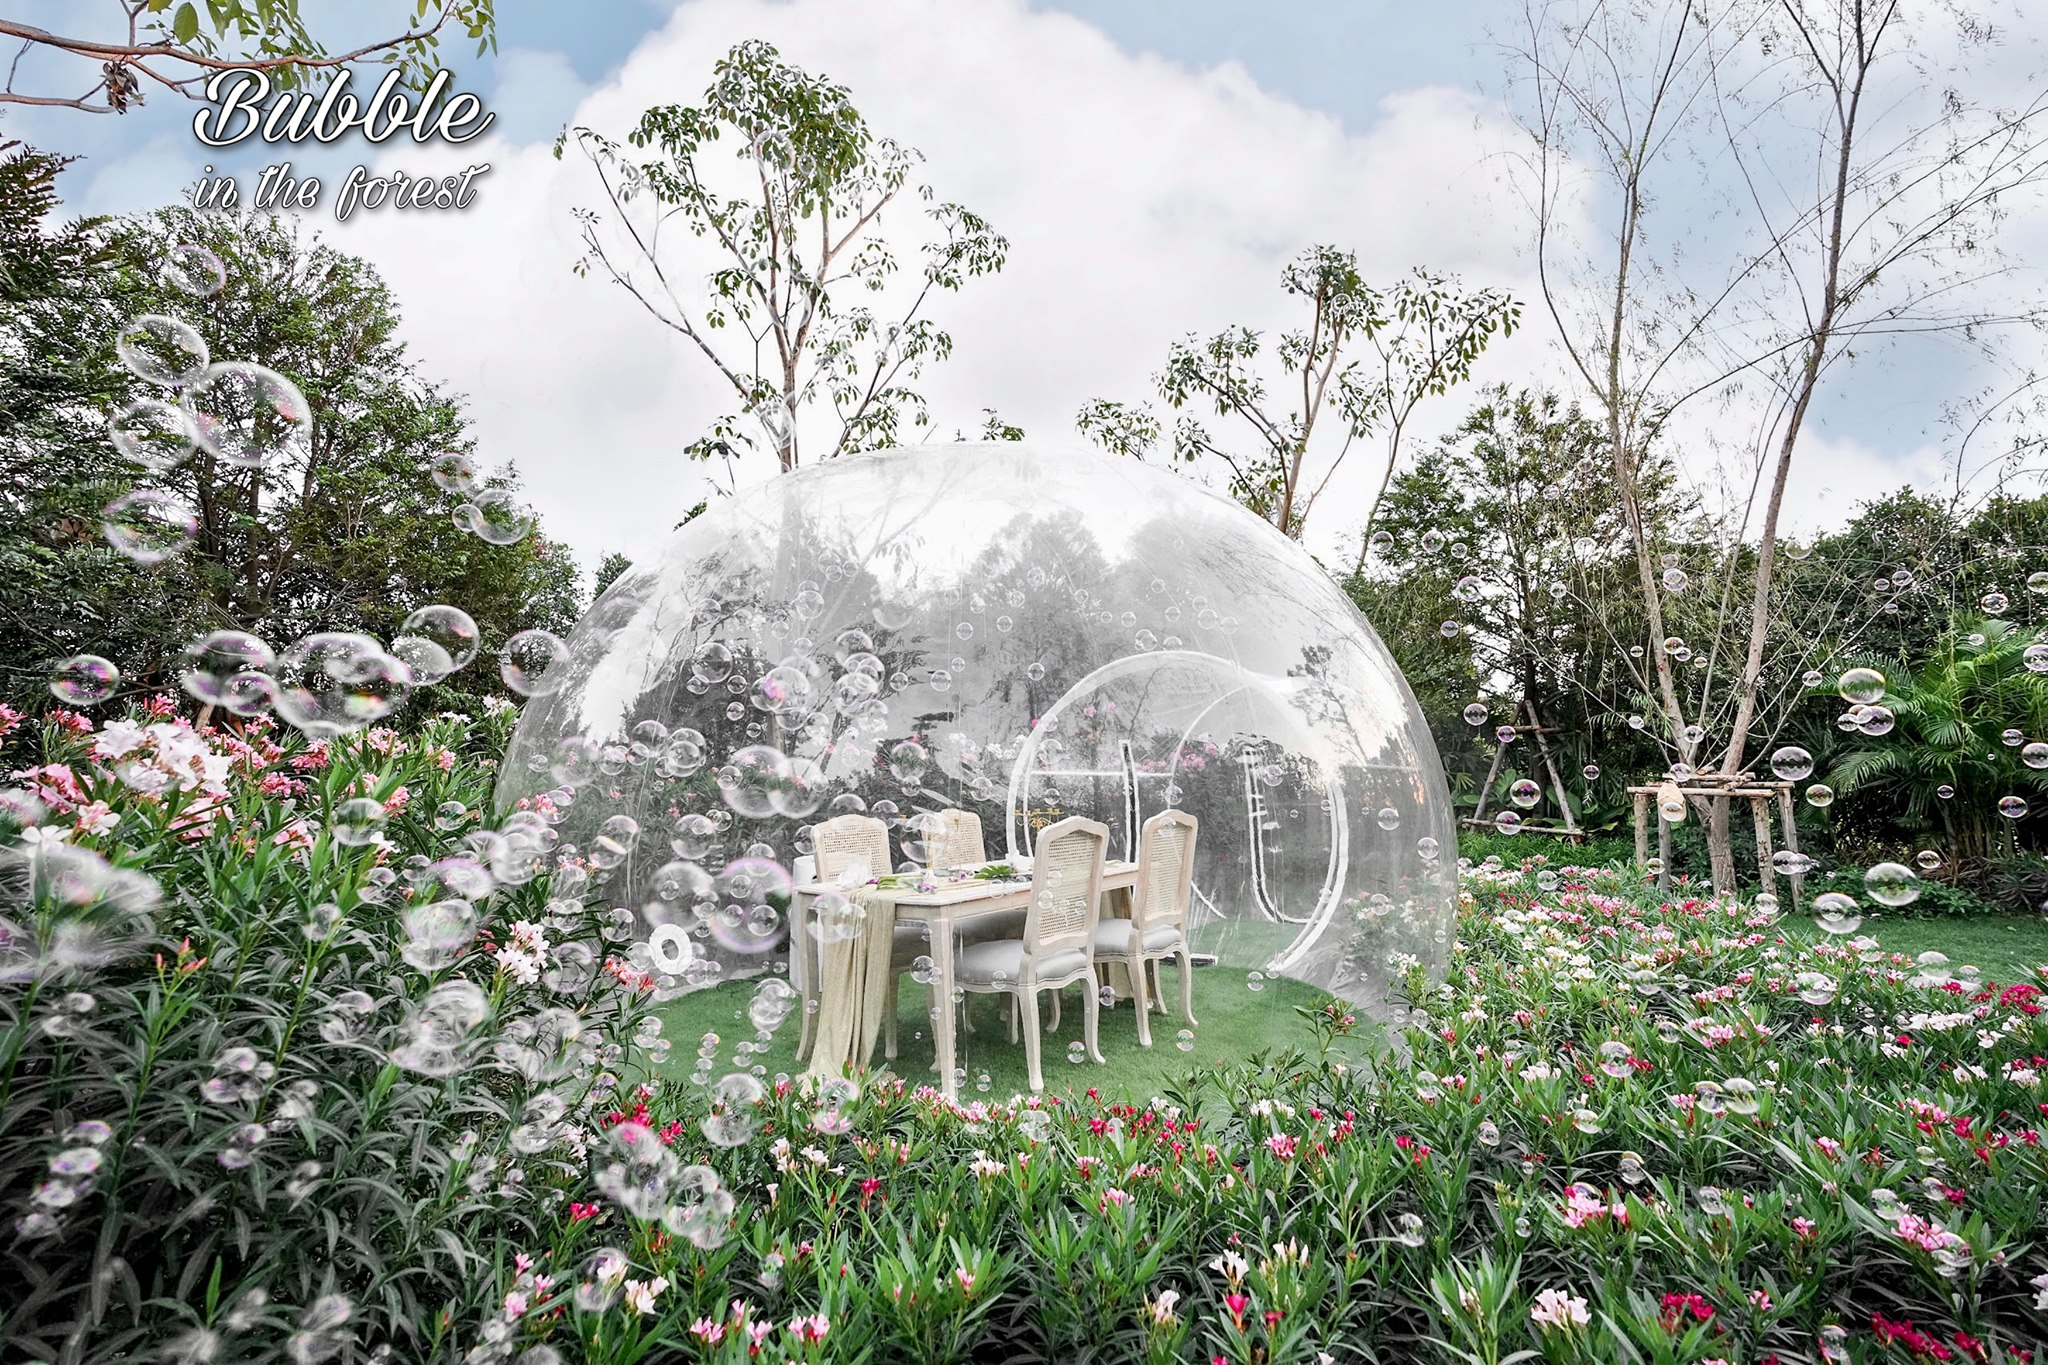 Bubble-in-the-forest-ivivu-7